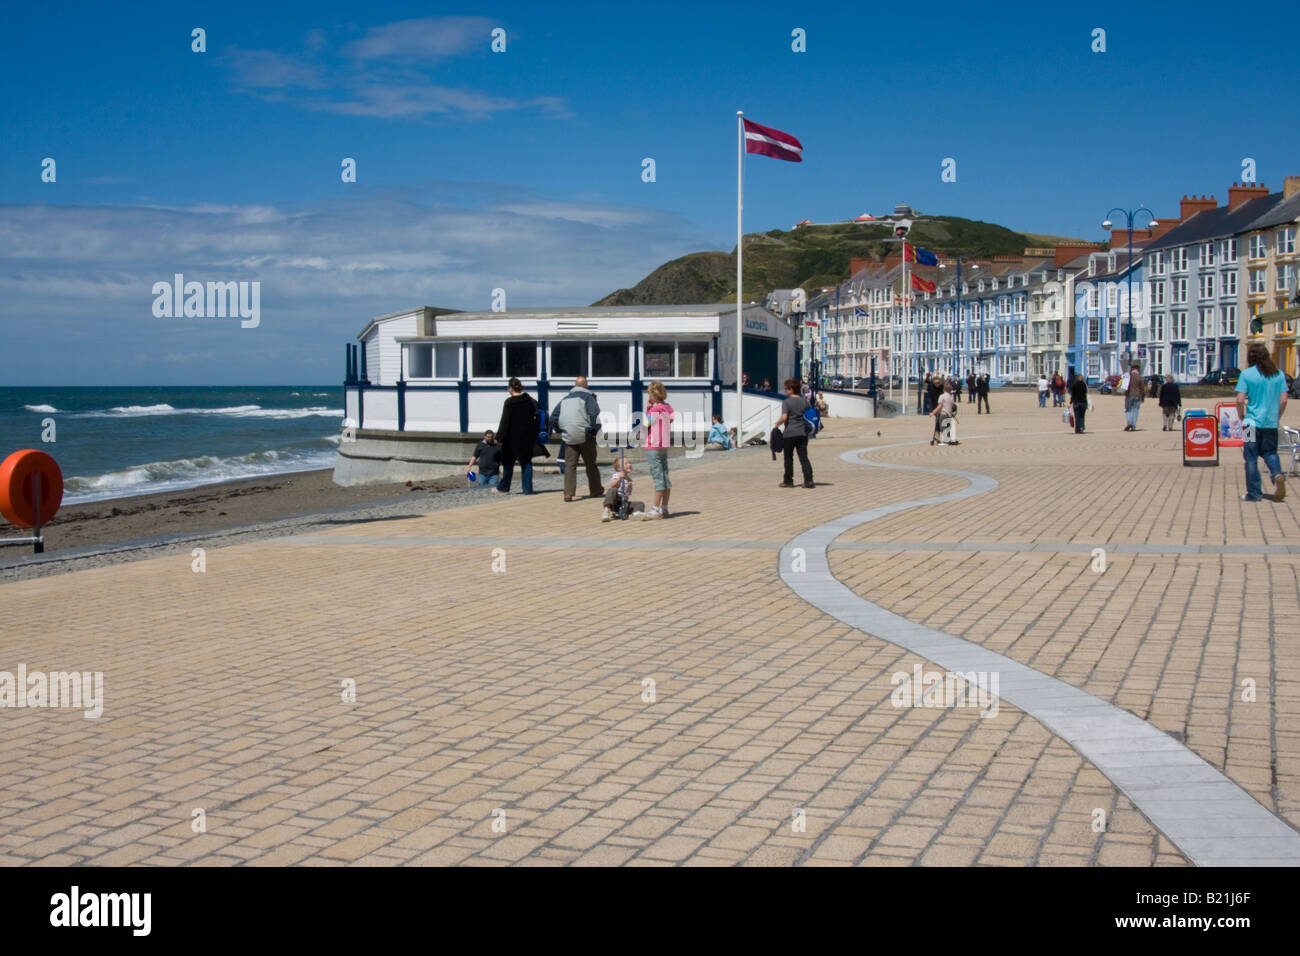 aberystwyth promenade showing bandstand and constitution hill - Stock Image